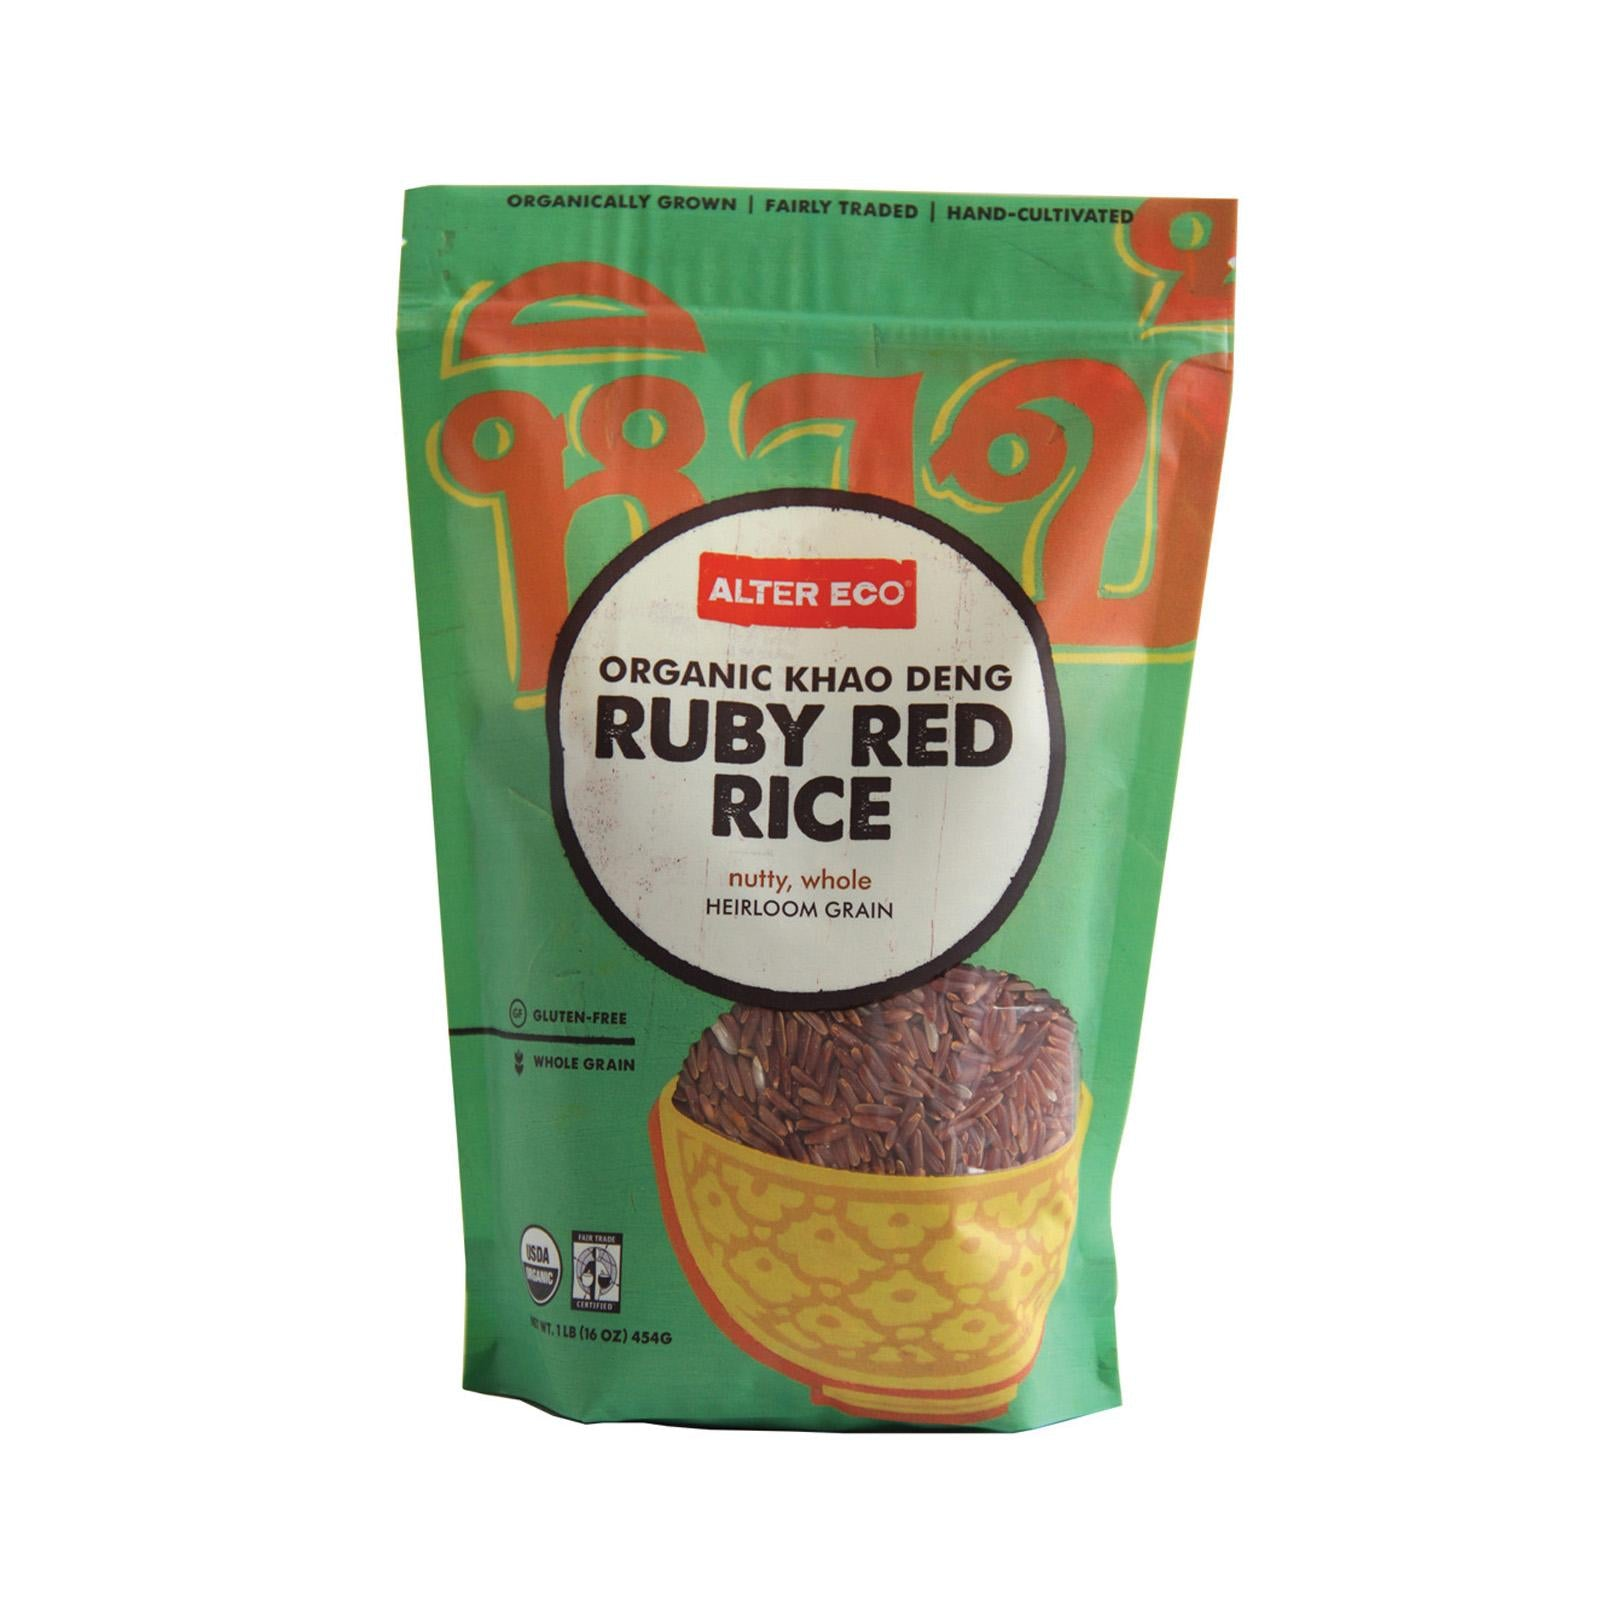 Alter Eco Americas Rice - Organic Khao Deng Ruby Red - Case Of 8 - 16 Oz.